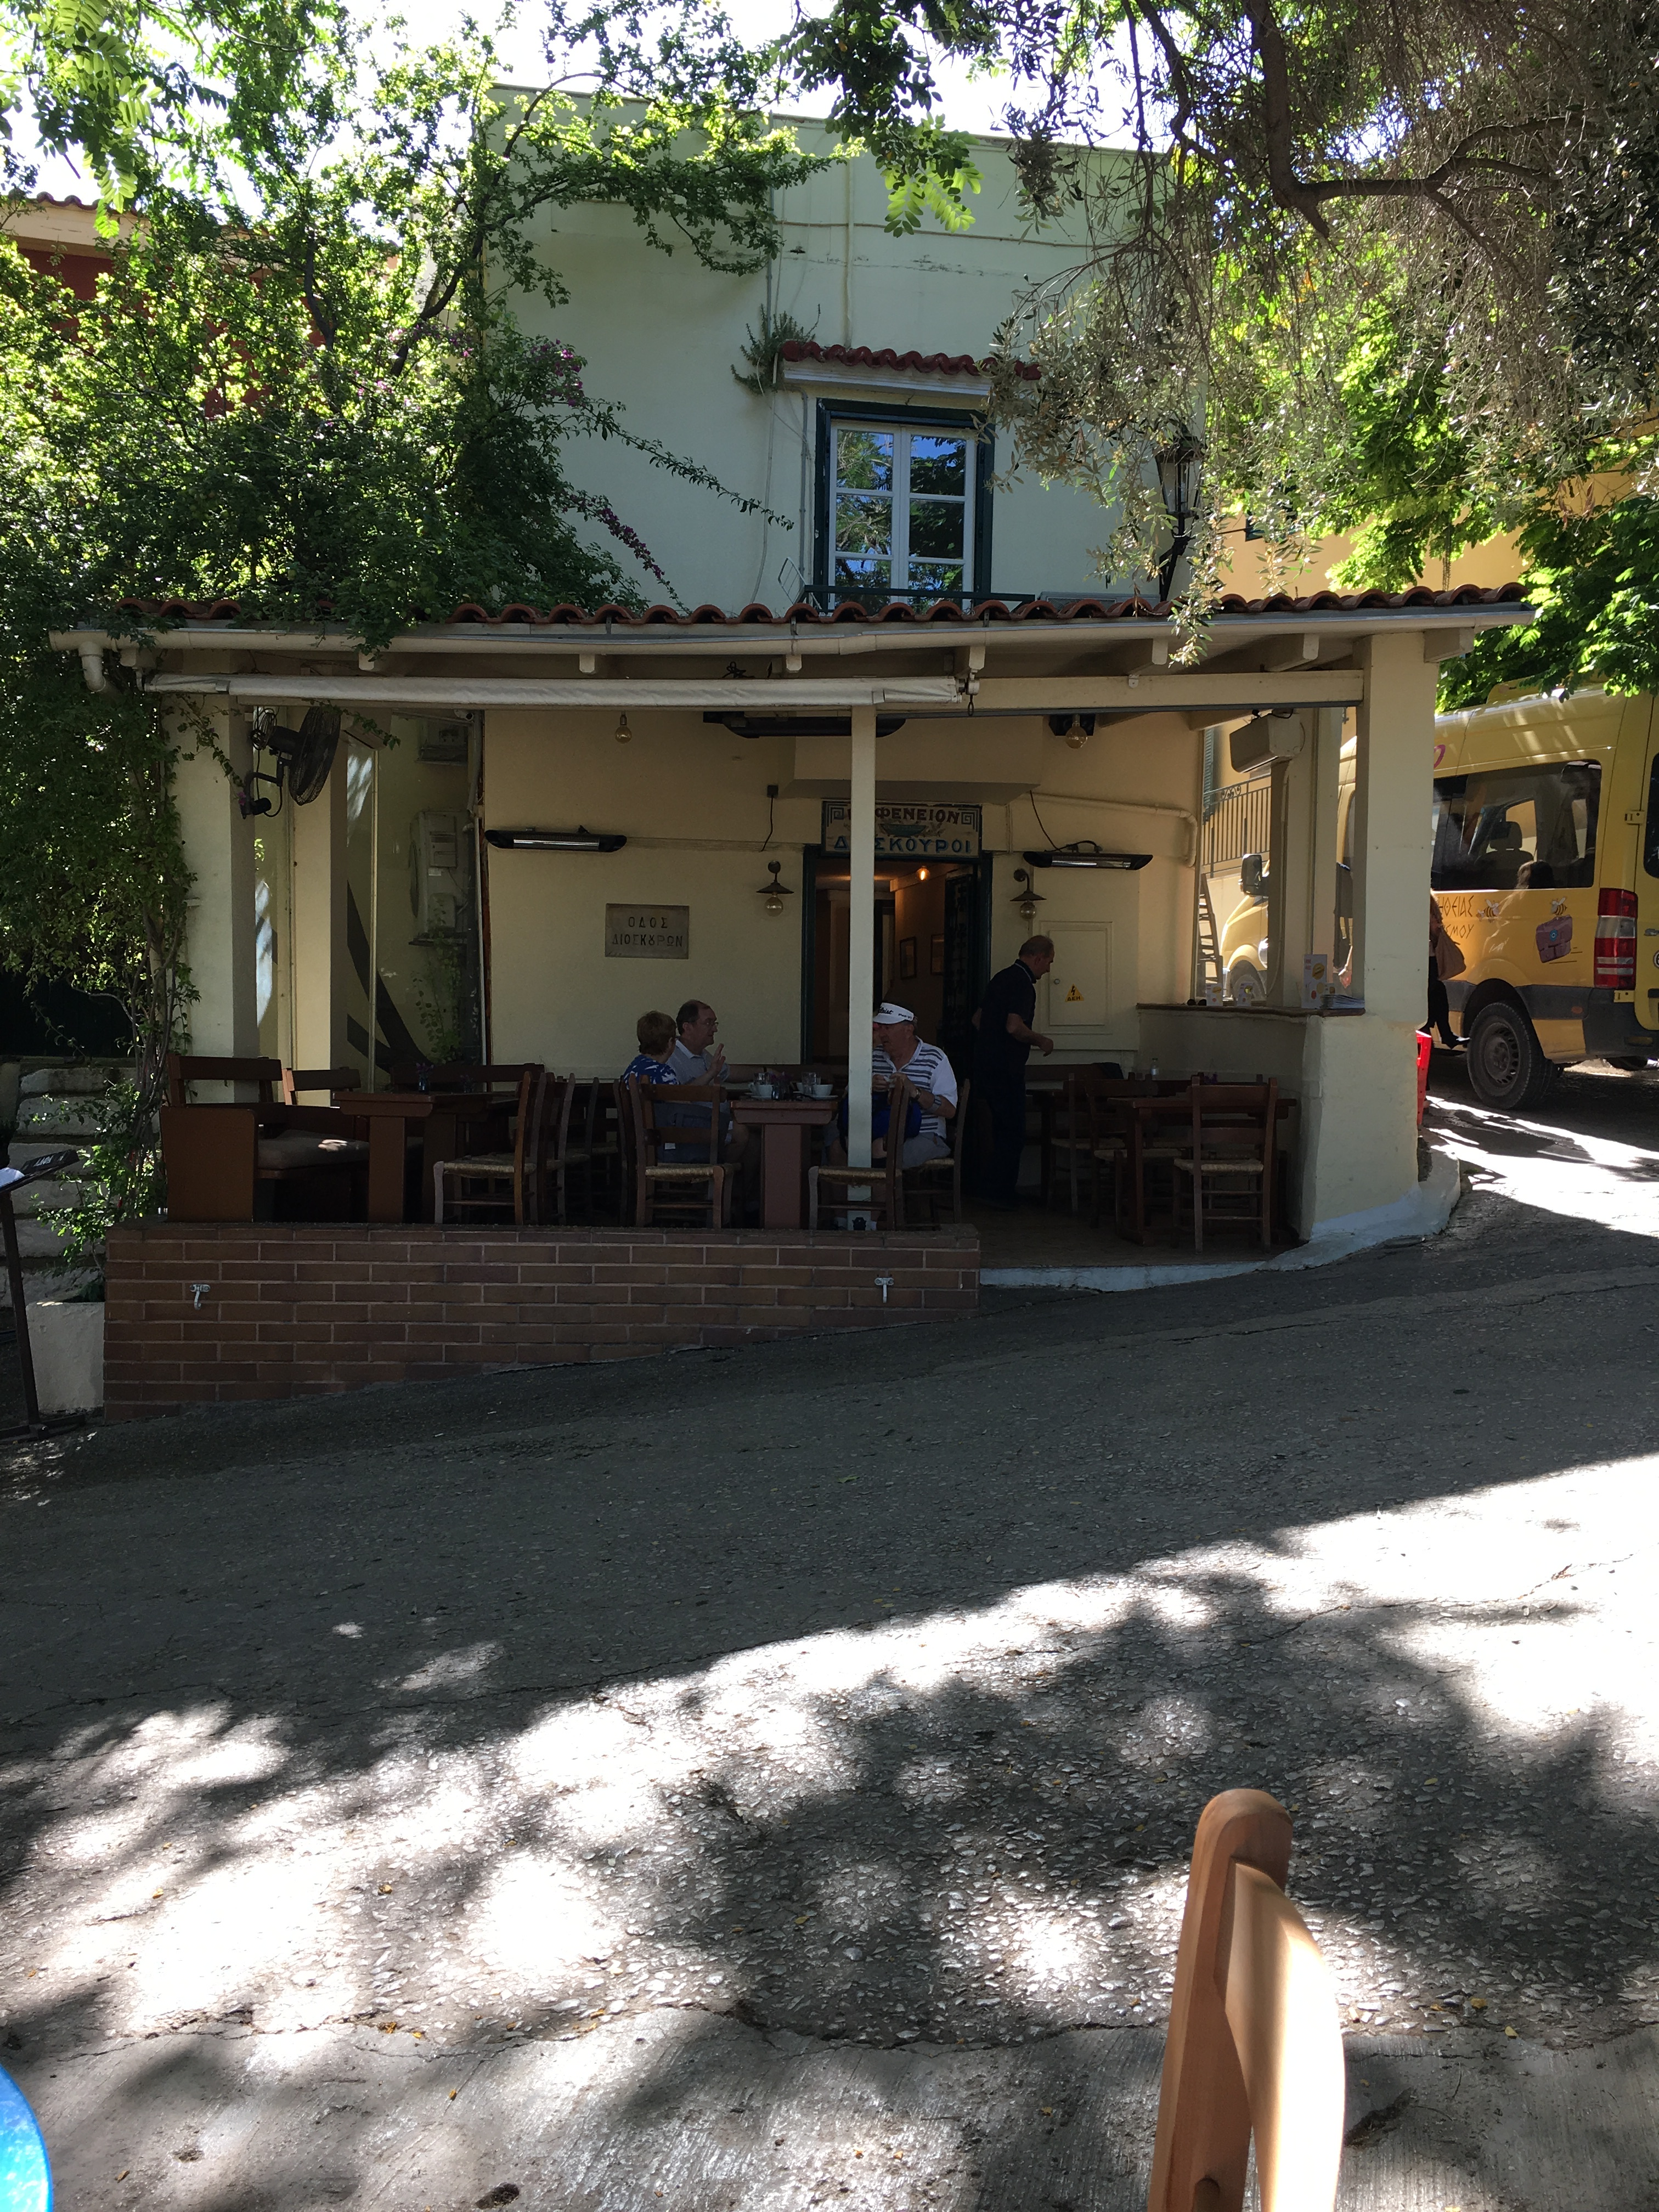 Street side cafe, Athens. Brownell, May 2019